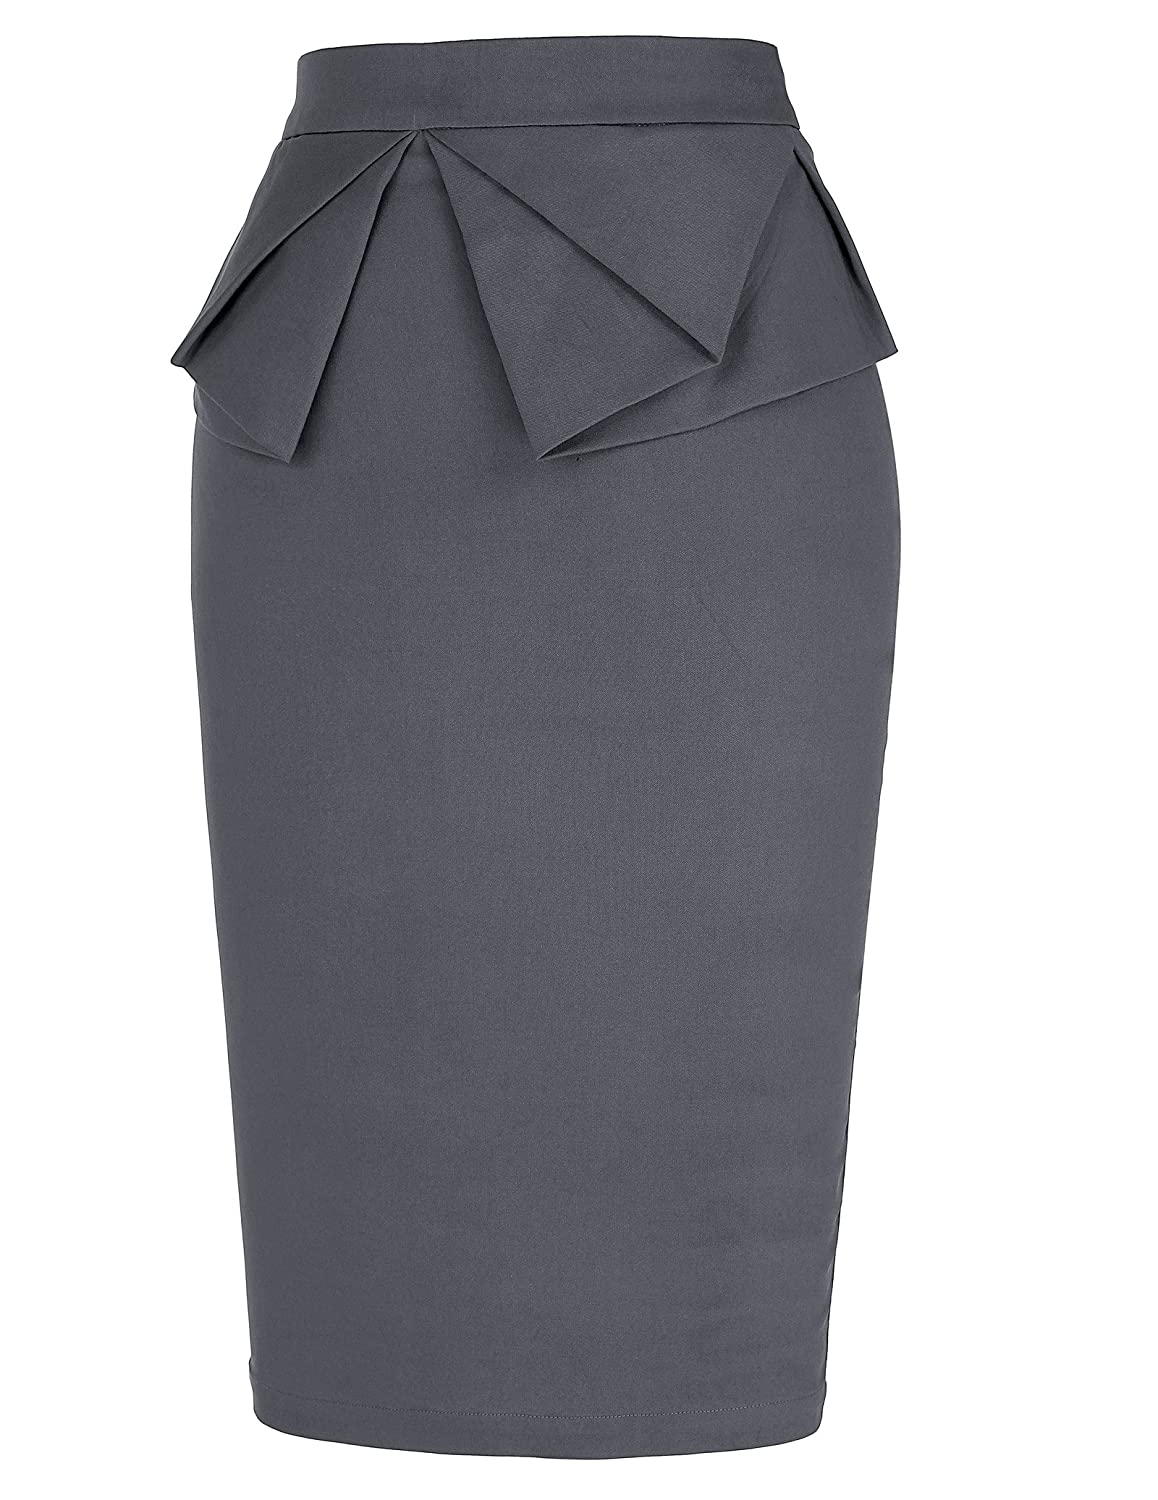 293b09bd568f PrettyWorld Vintage Dress Women's Wear to Work Stretchy Office Pencil Skirt  at Amazon Women's Clothing store: